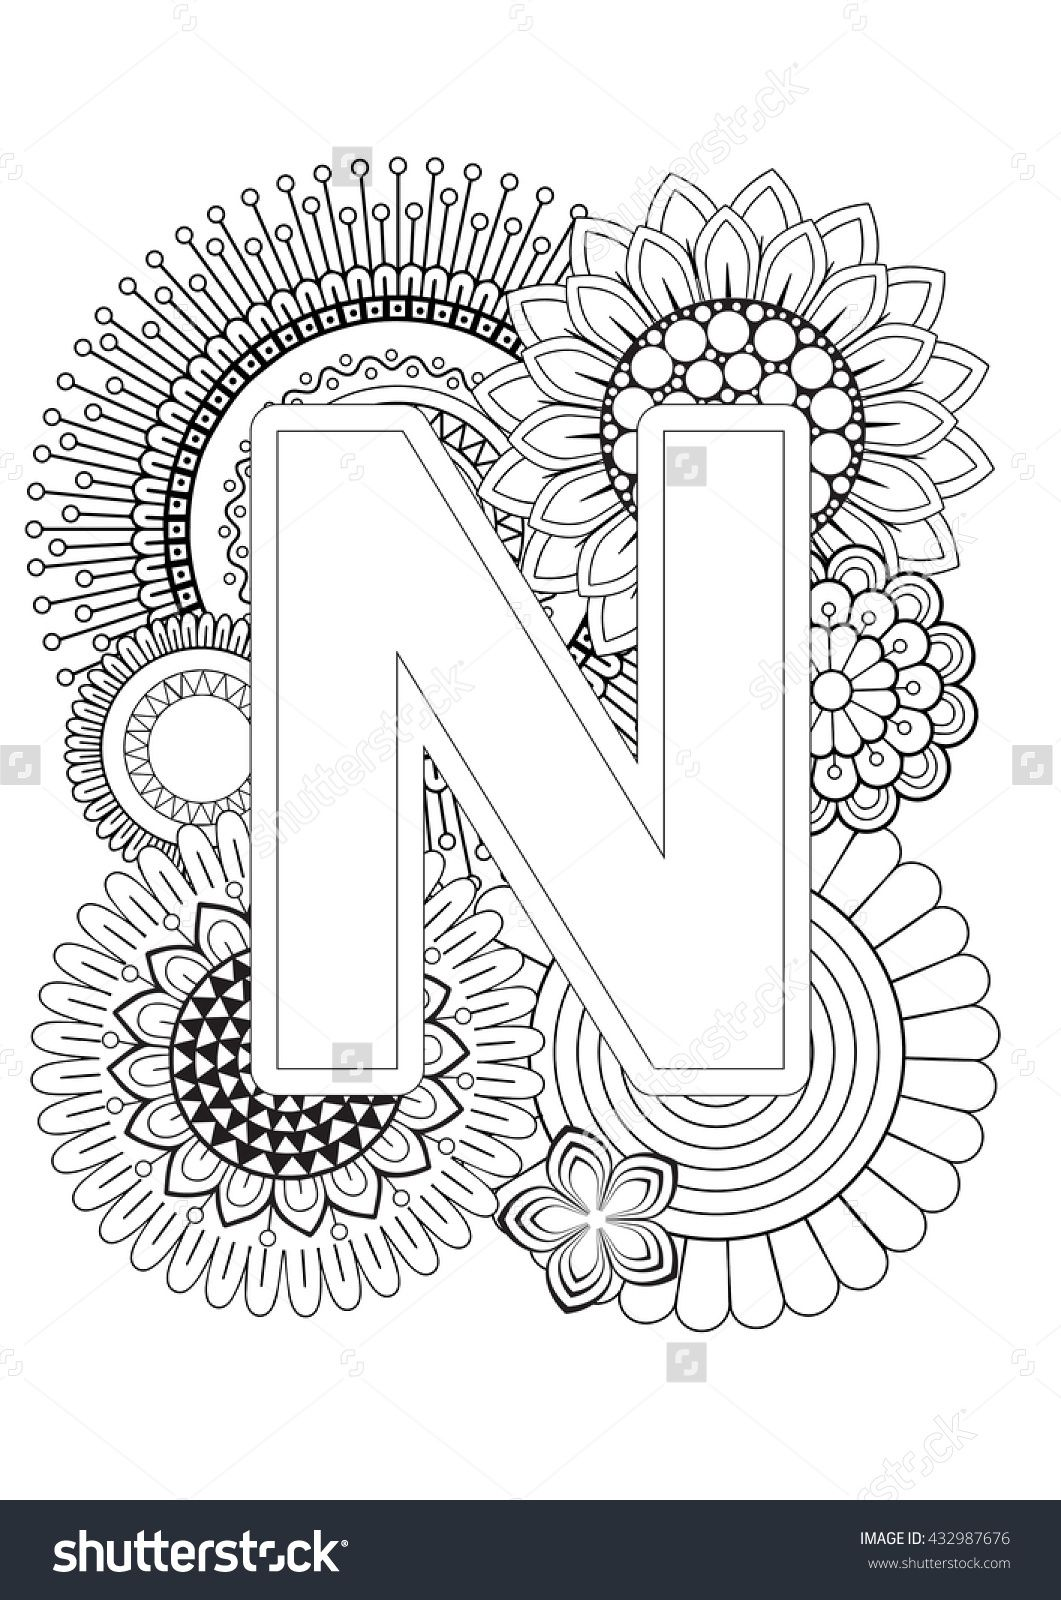 Doodle floral letters coloring book for adult mandala and doodle floral letters coloring book for adult mandala and sunflower abc book thecheapjerseys Choice Image